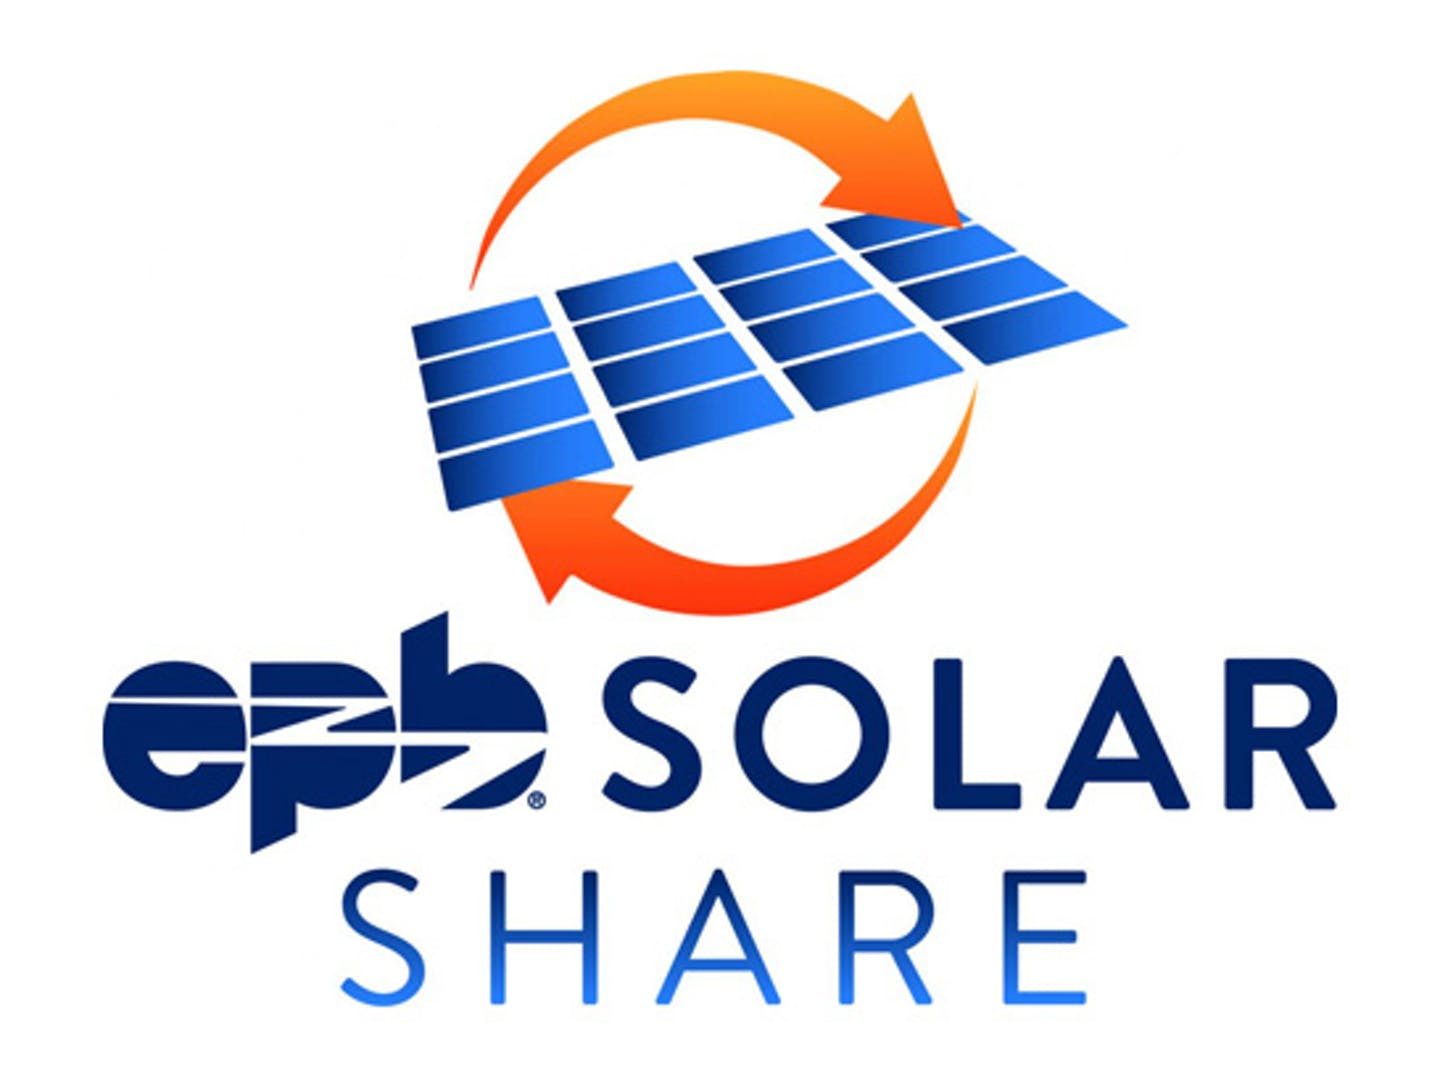 epb-and-moxy-hotel-partnership-supports-green-lodging-and-special-events-powered-by-solar-share.jpeg